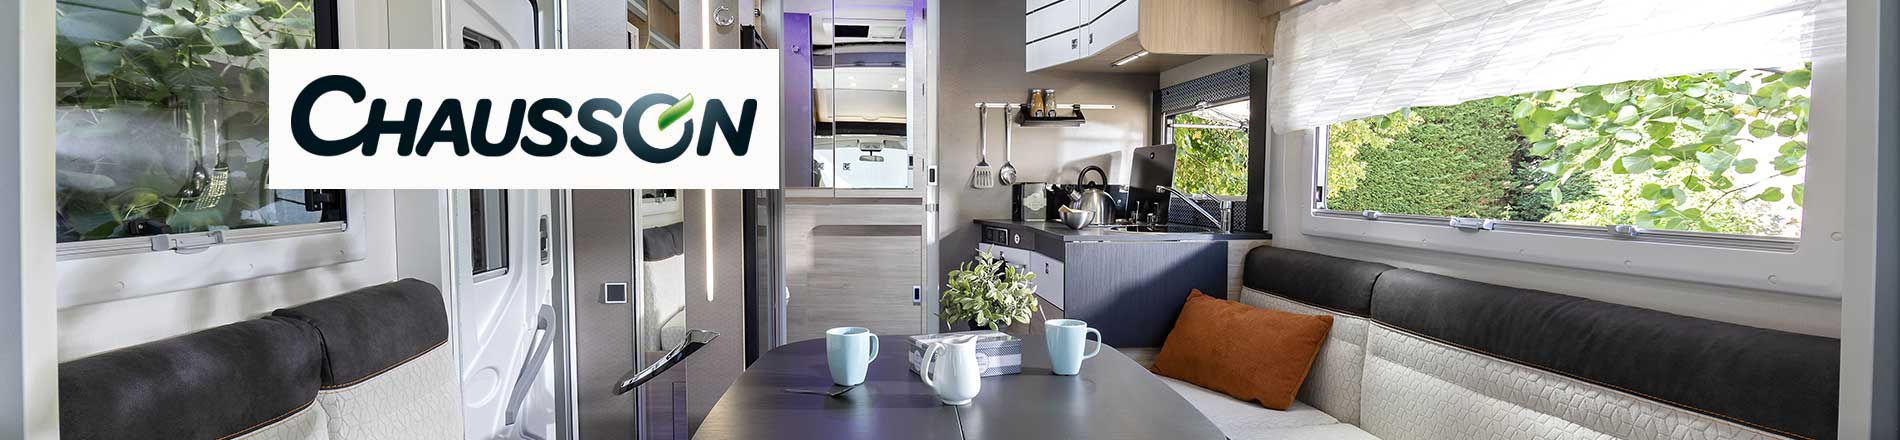 Interior view of a Chausson Motorhome